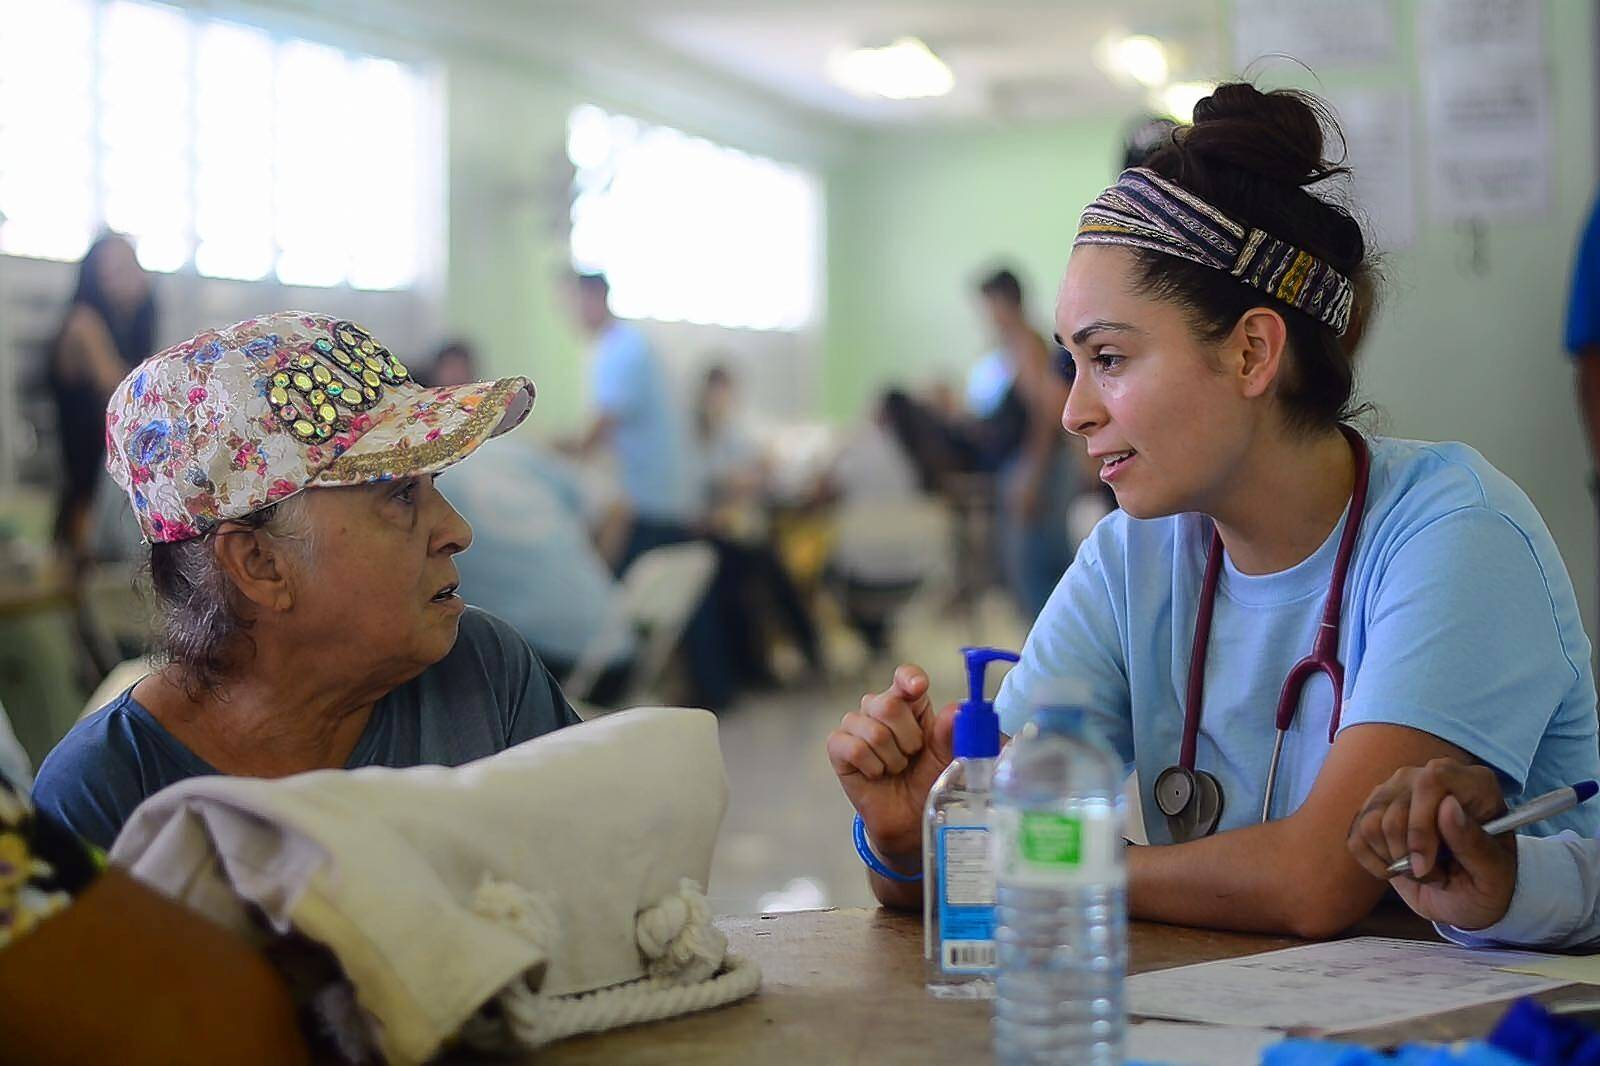 Maria Soriano, right, a cardiovascular nurse at Elmhurst Hospital, meets with a patient in Puerto Rico during a medical relief mission in October 2017 following hurricanes that devastated islands throughout the Caribbean.